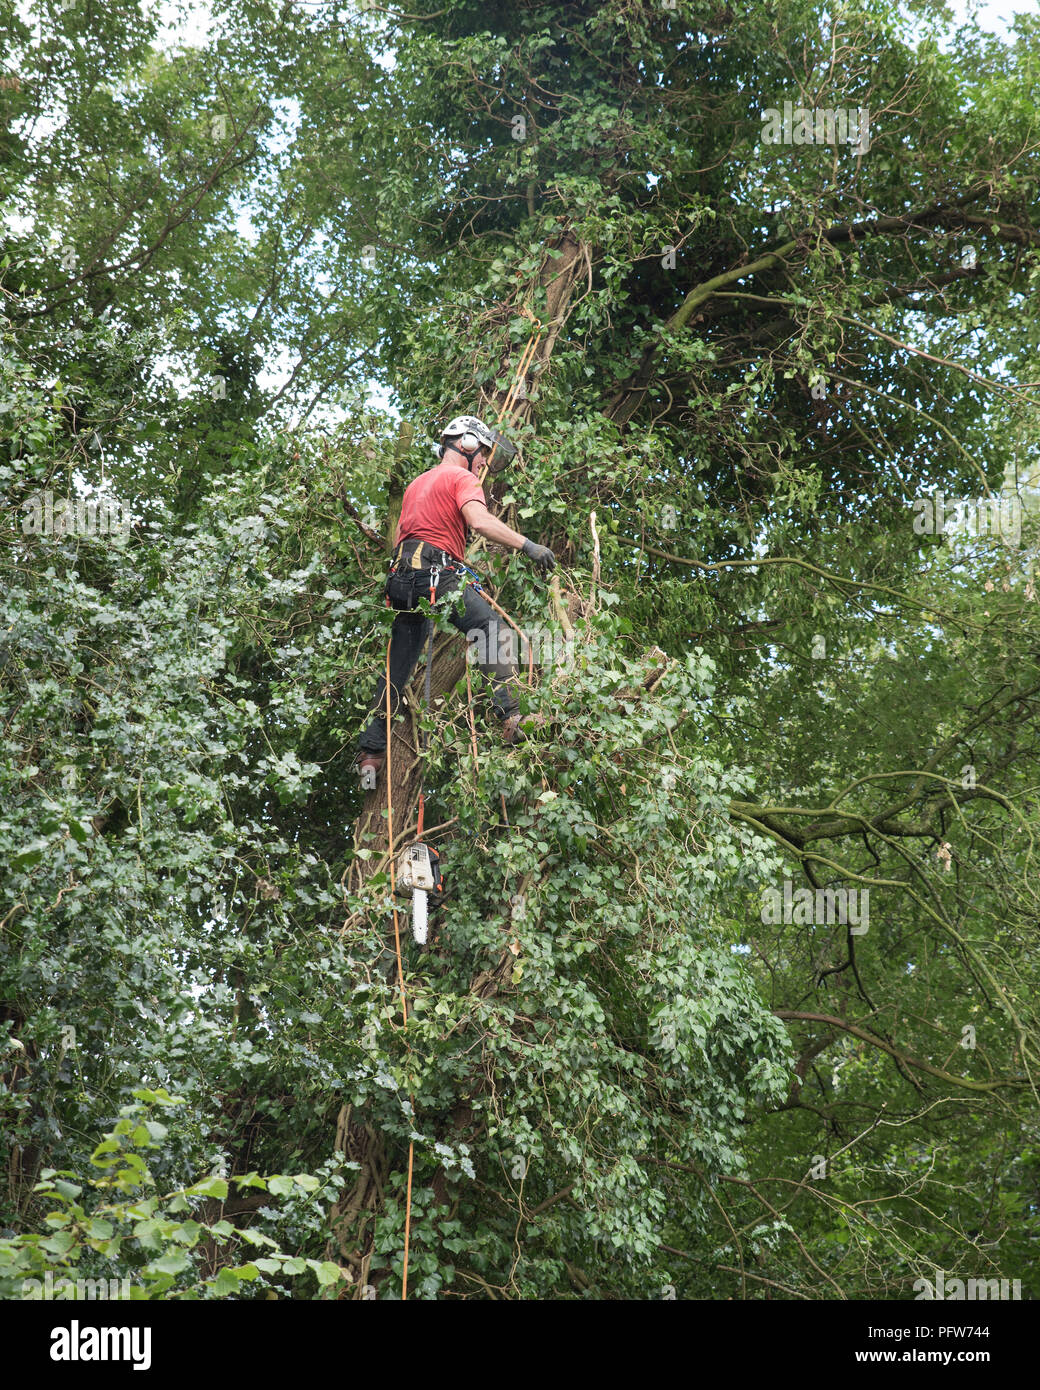 Male Tree Surgeon standing on a branch up a tall tree. Stock Photo